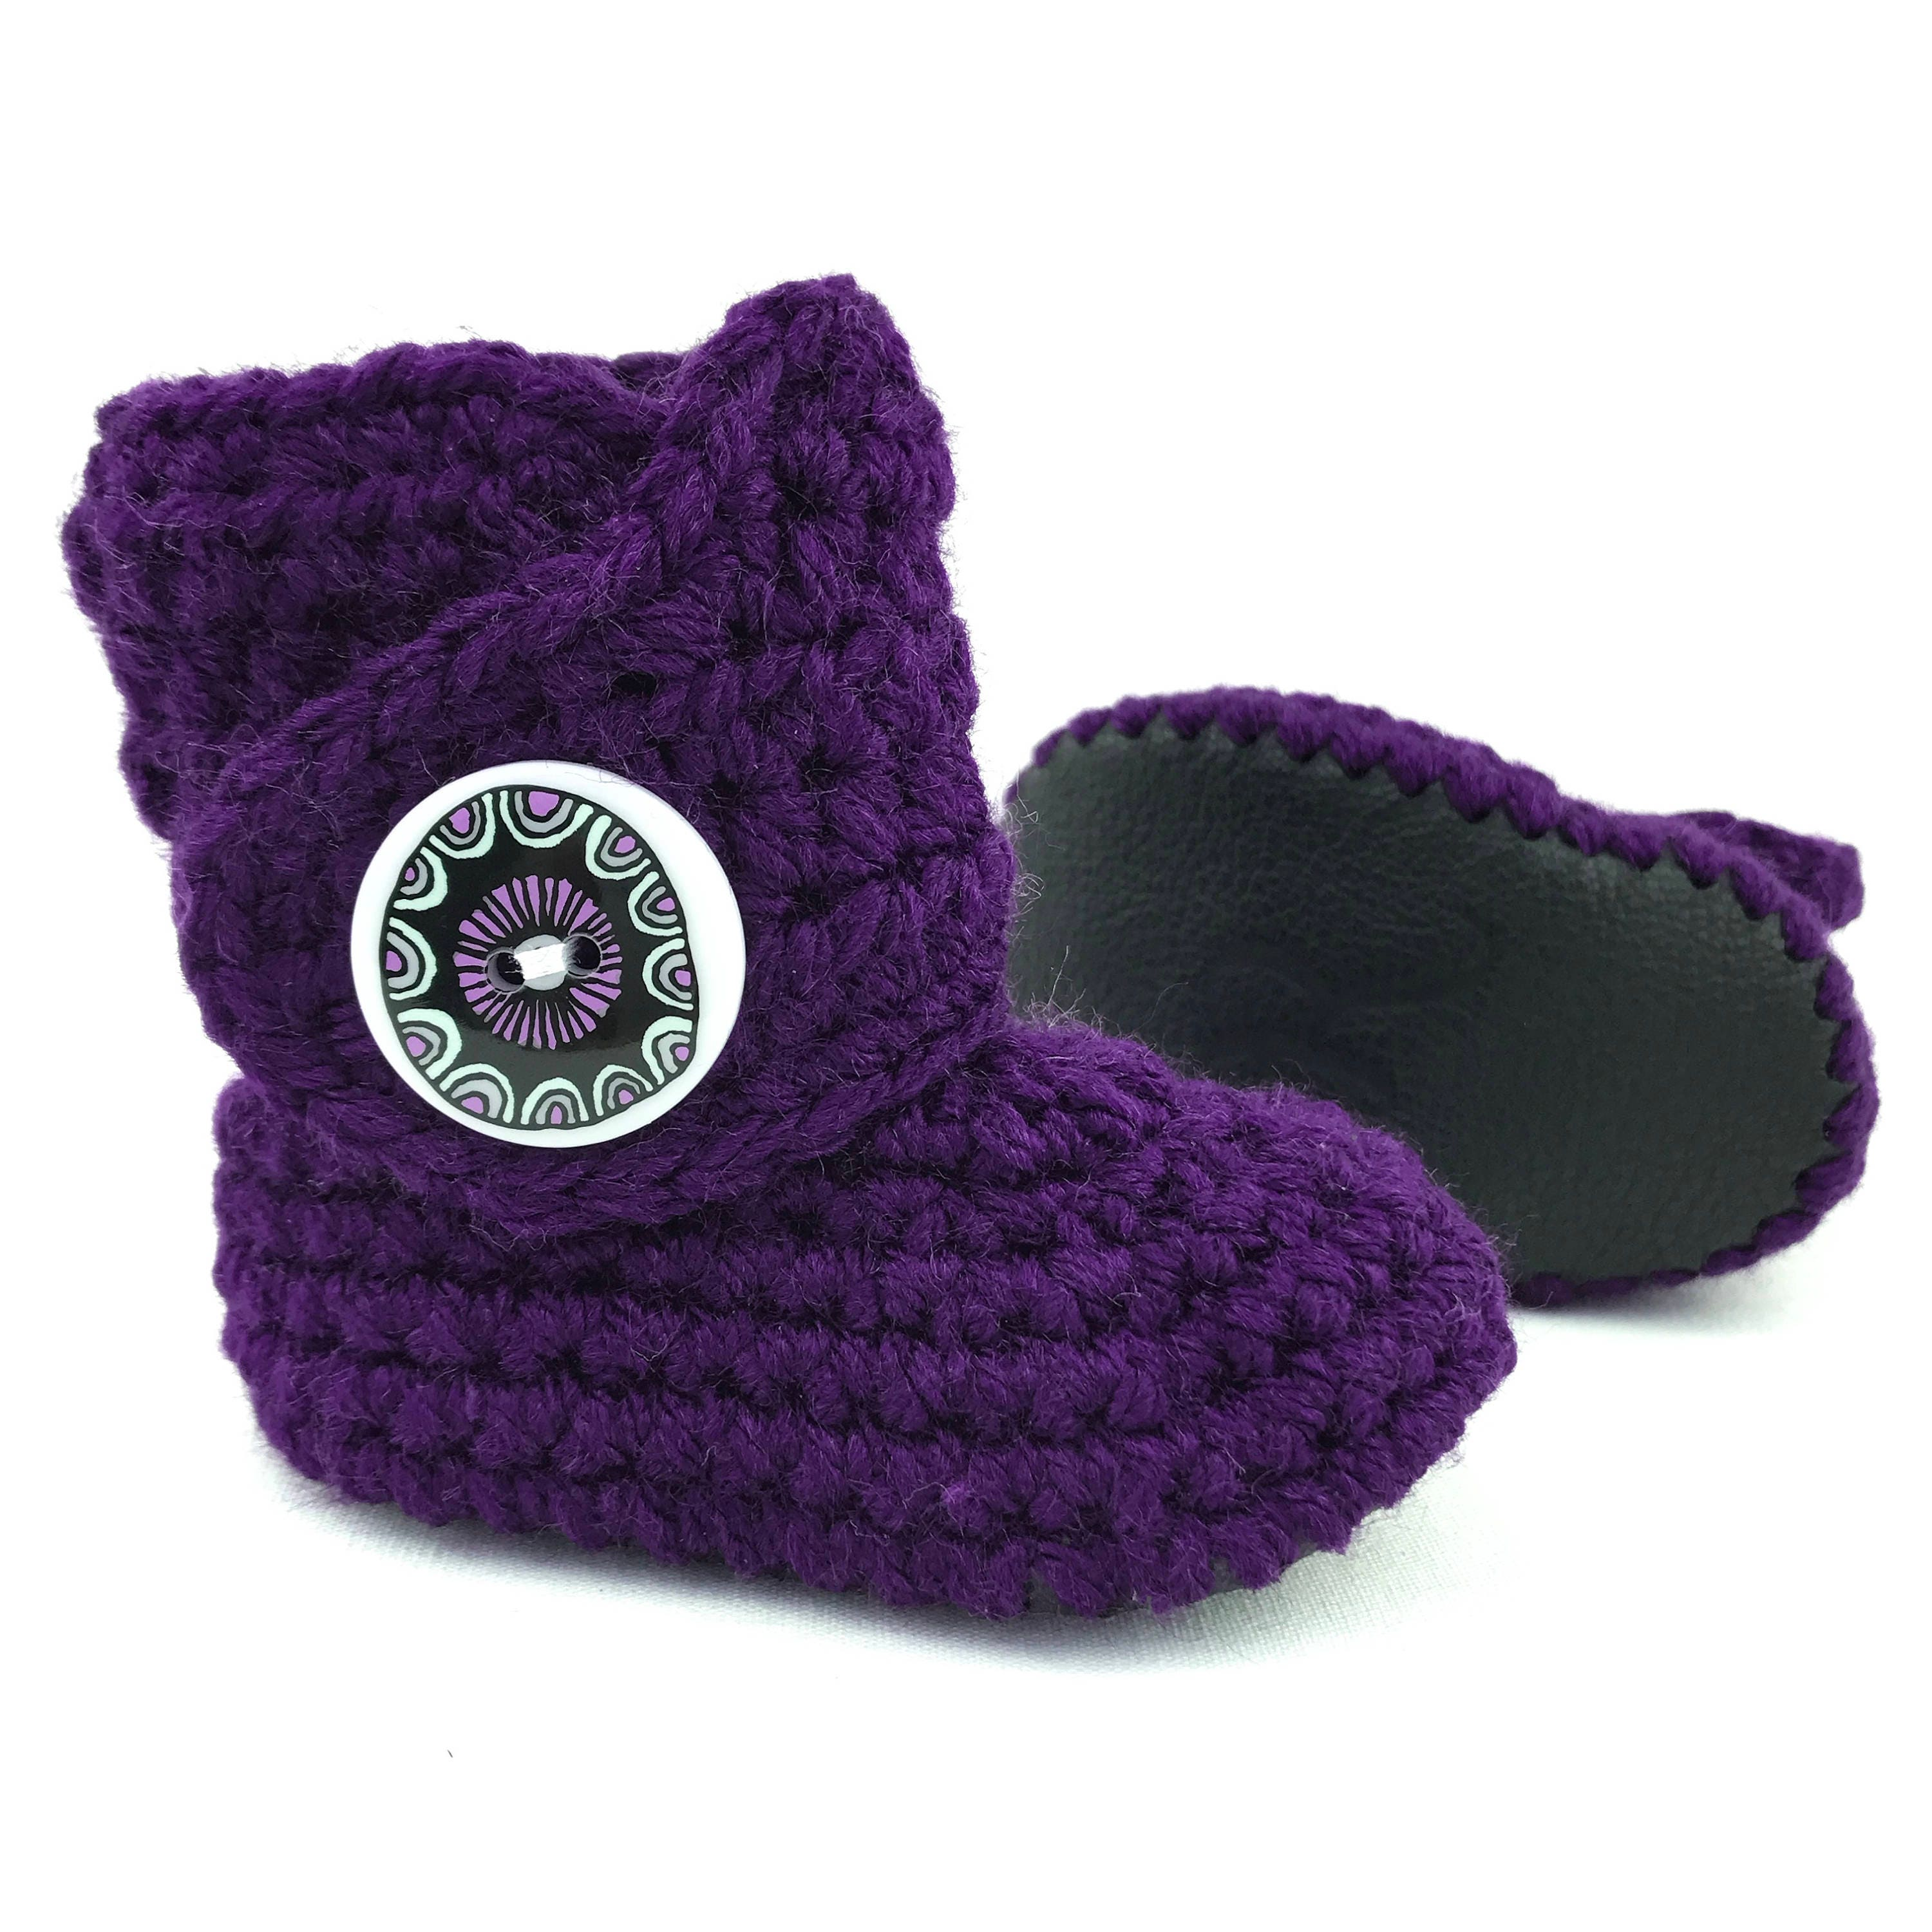 6aa83c086a2a6 Girl Crib Shoes, Black Soft Soles, Crochet Baby Booties, Dark Purple Infant  Boots, Knit Baby Shoes, LSU Baby Clothes, Baby Shower Present